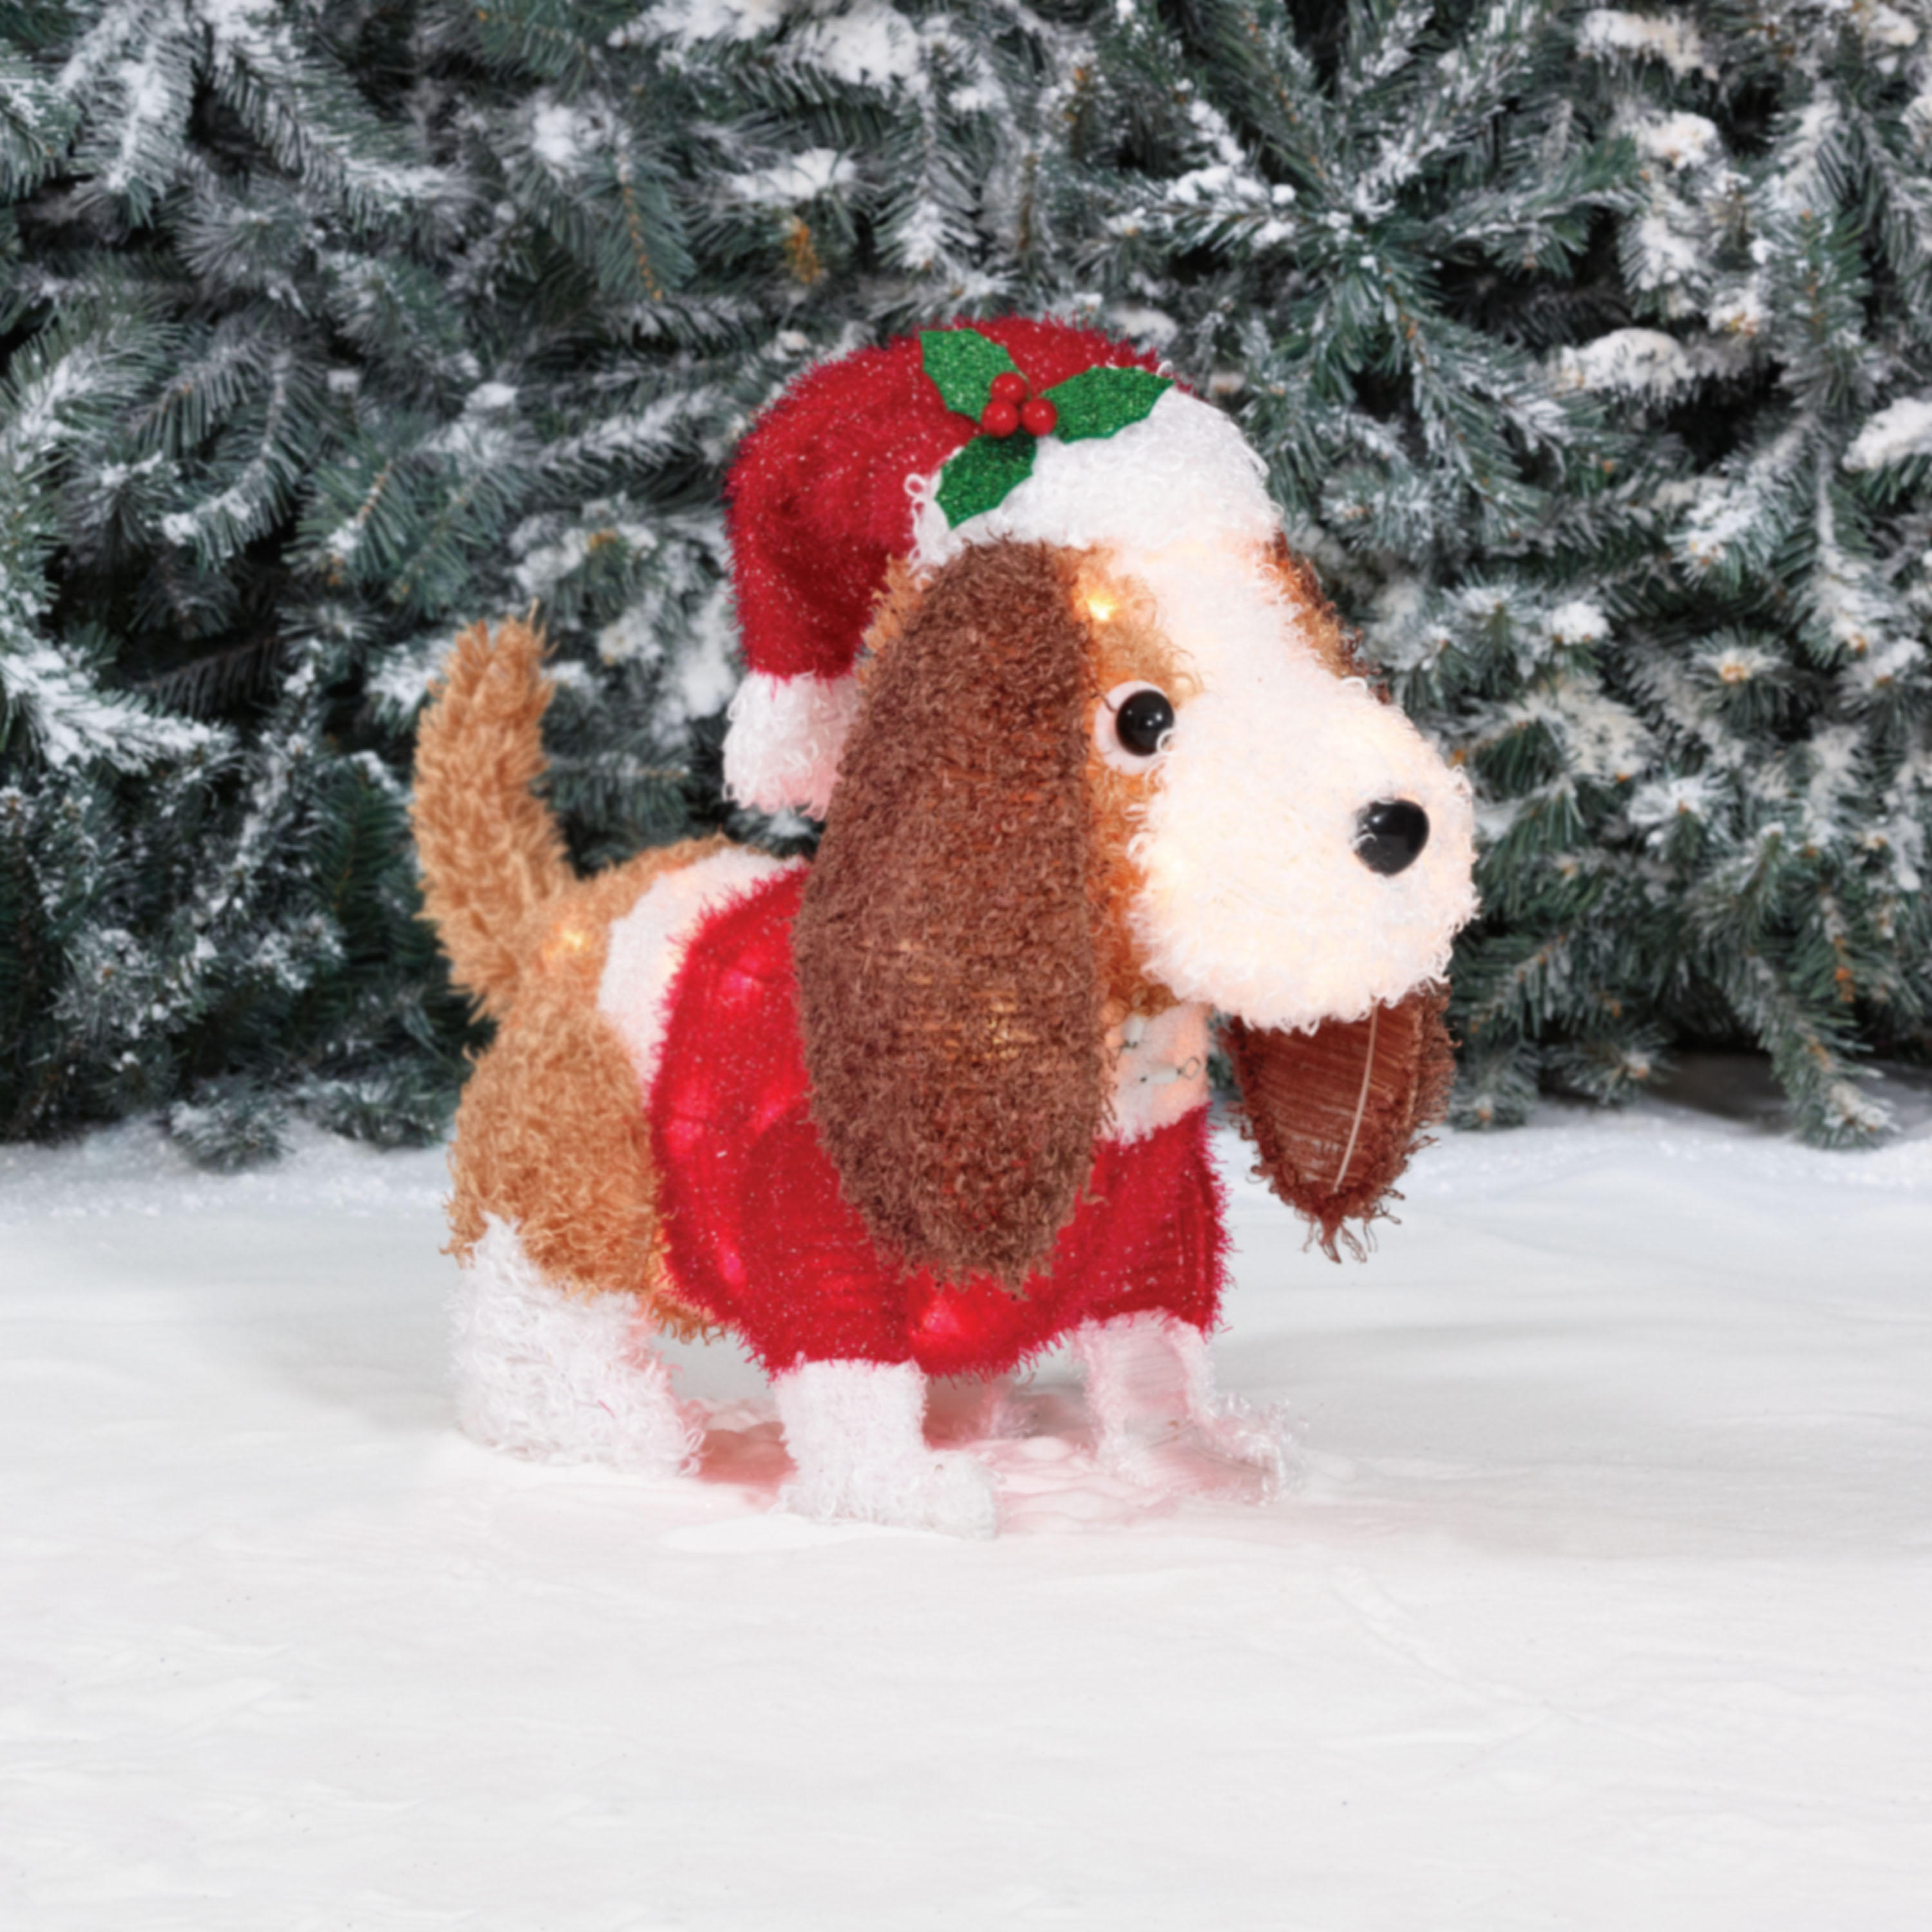 22 in Holiday Time Light up Fluffy Spaniel Christmas Decoration Walmart